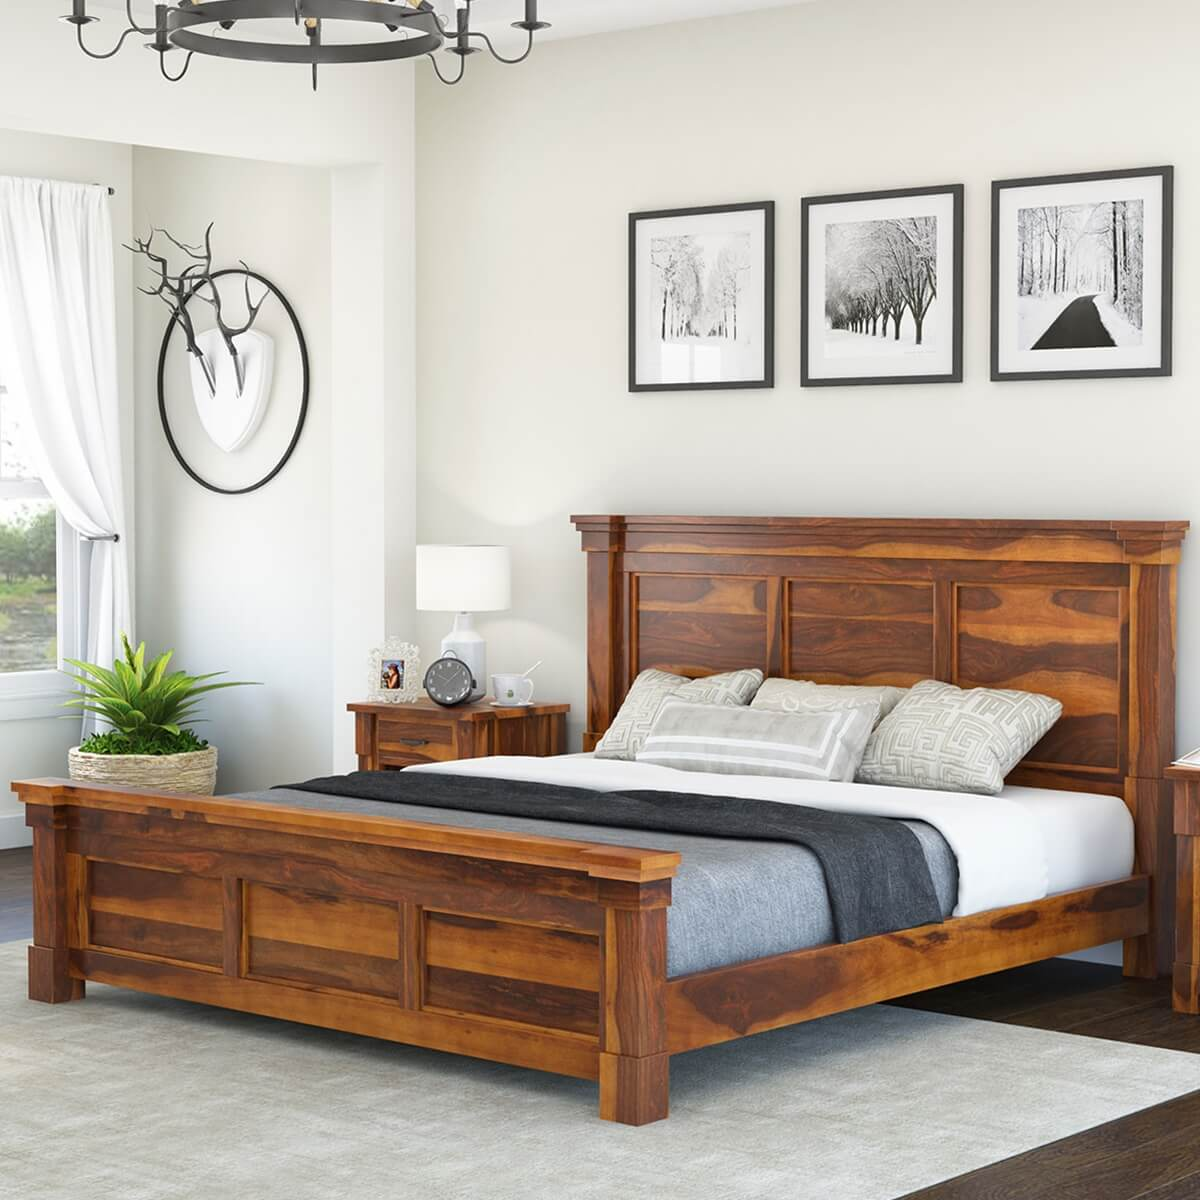 Wooden platform bed reclaimed wood platform bed from Wood platform bed